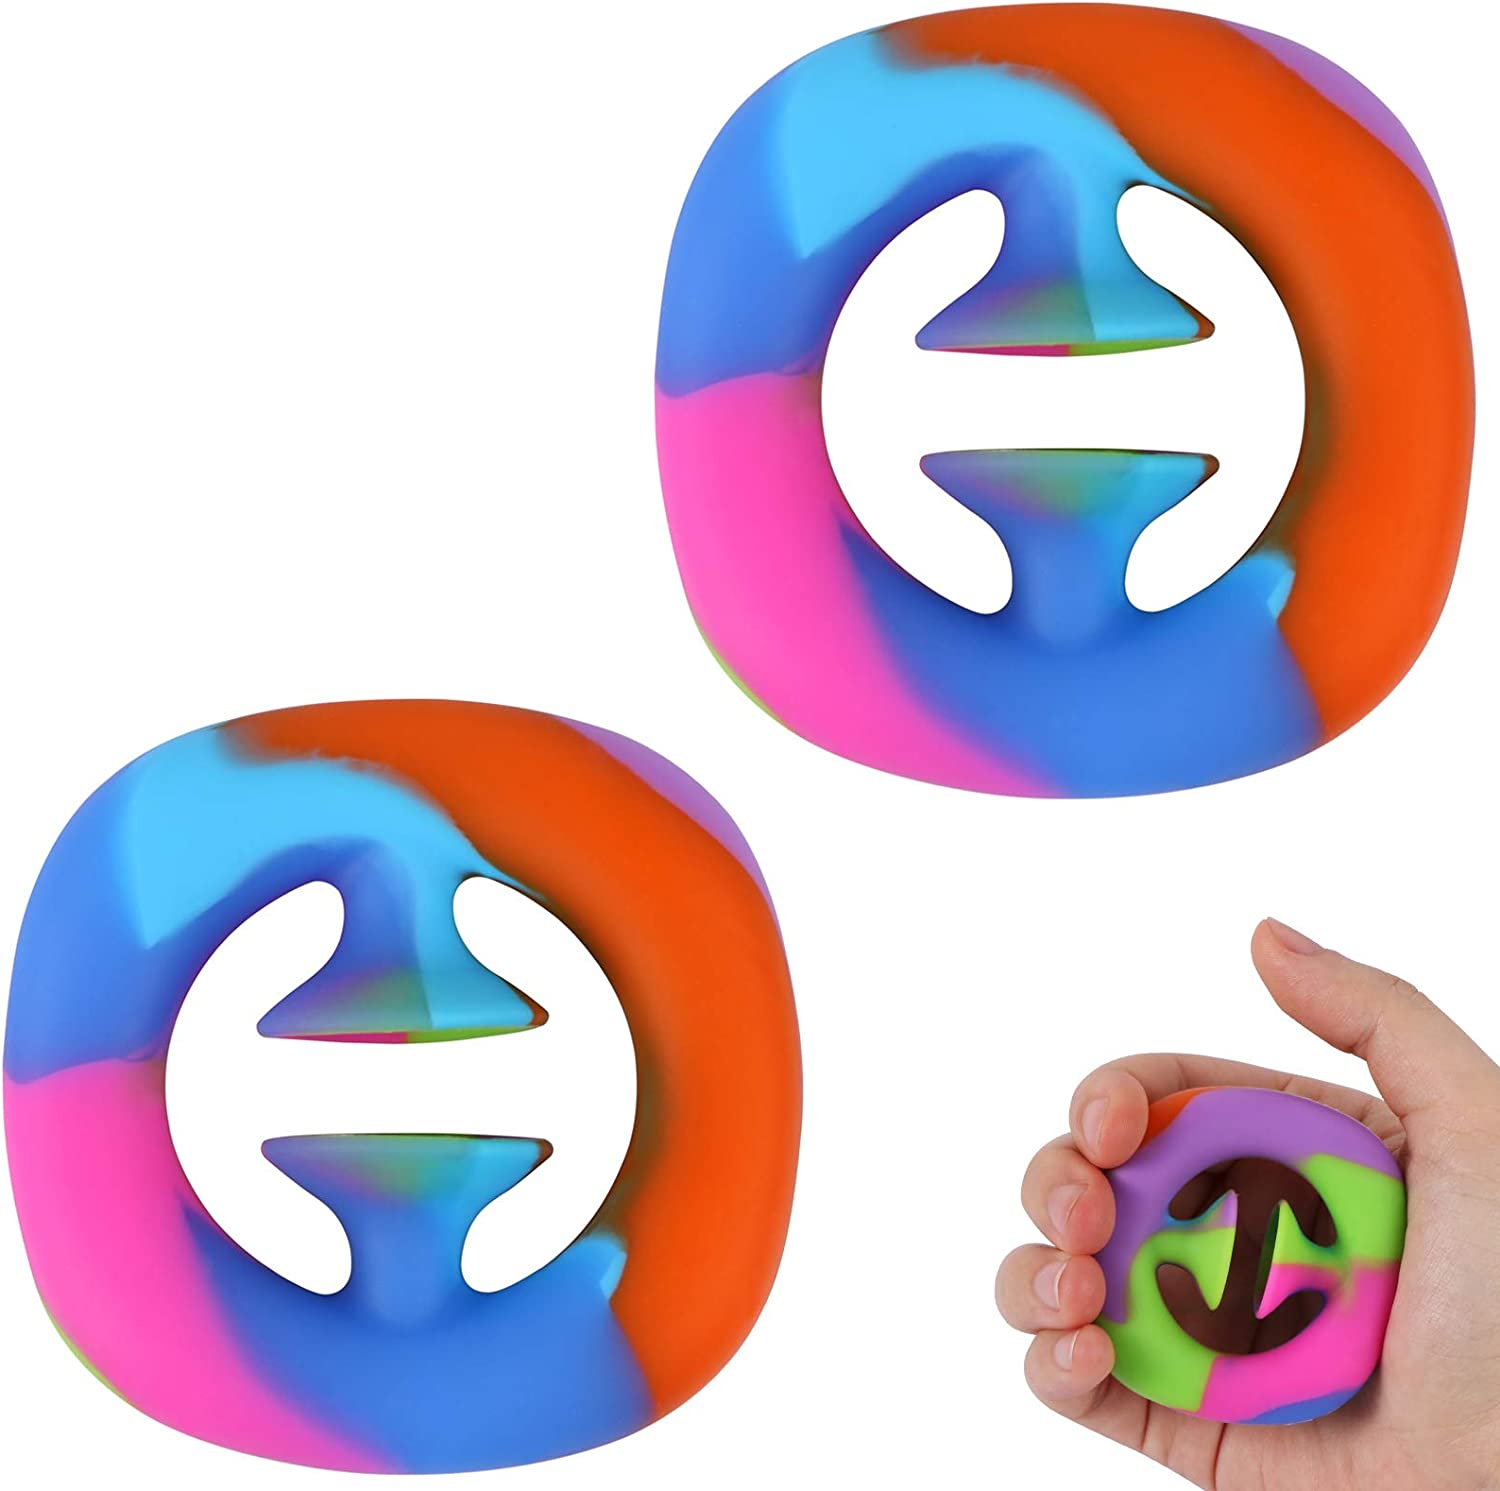 Blue Green Funny Suction Cup Stress Relief Toy Click Finger Sensory Toy Silicone Push Toy Noise Making Squeeze Toy Party Popper Noise Maker For Children And Adults 2 Pack Snap Fidget Toys